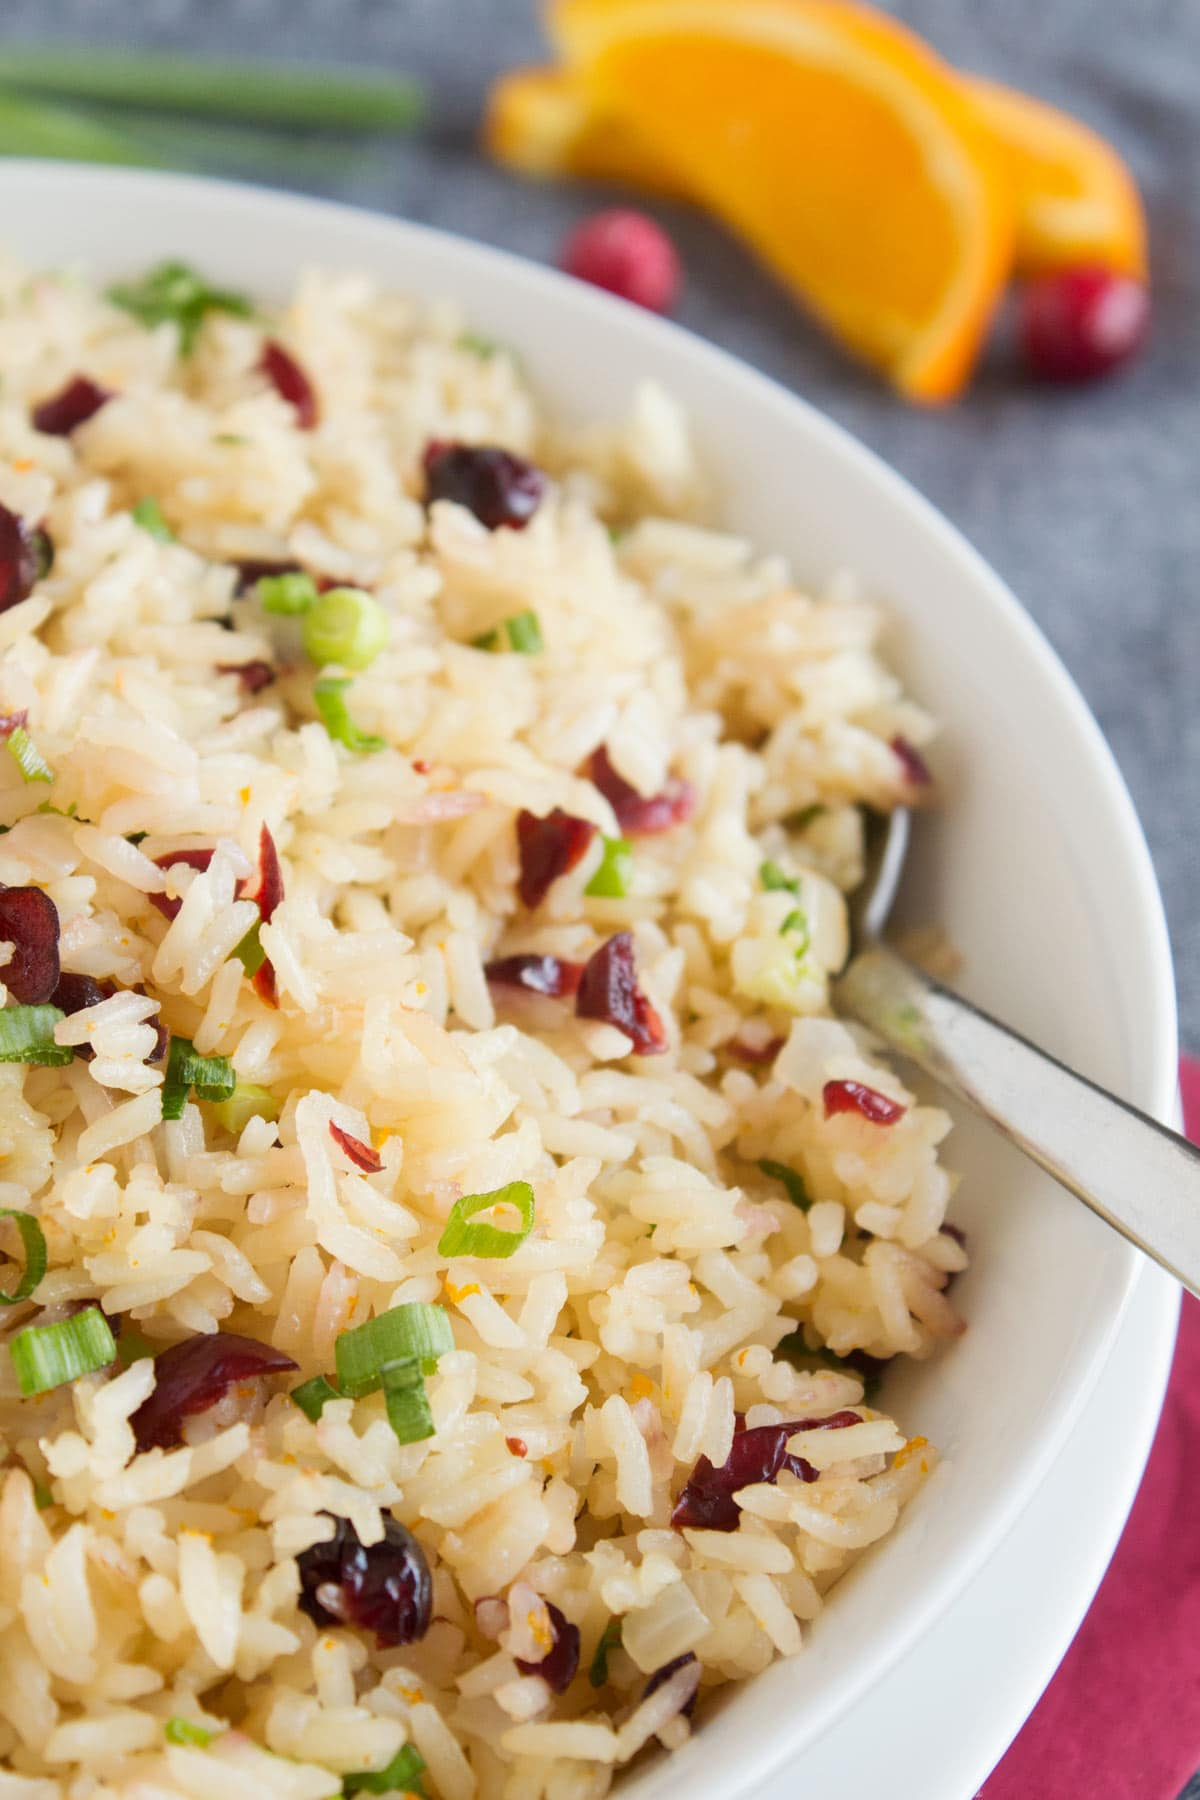 Citrus rice with cranberries and orange slices in the background.